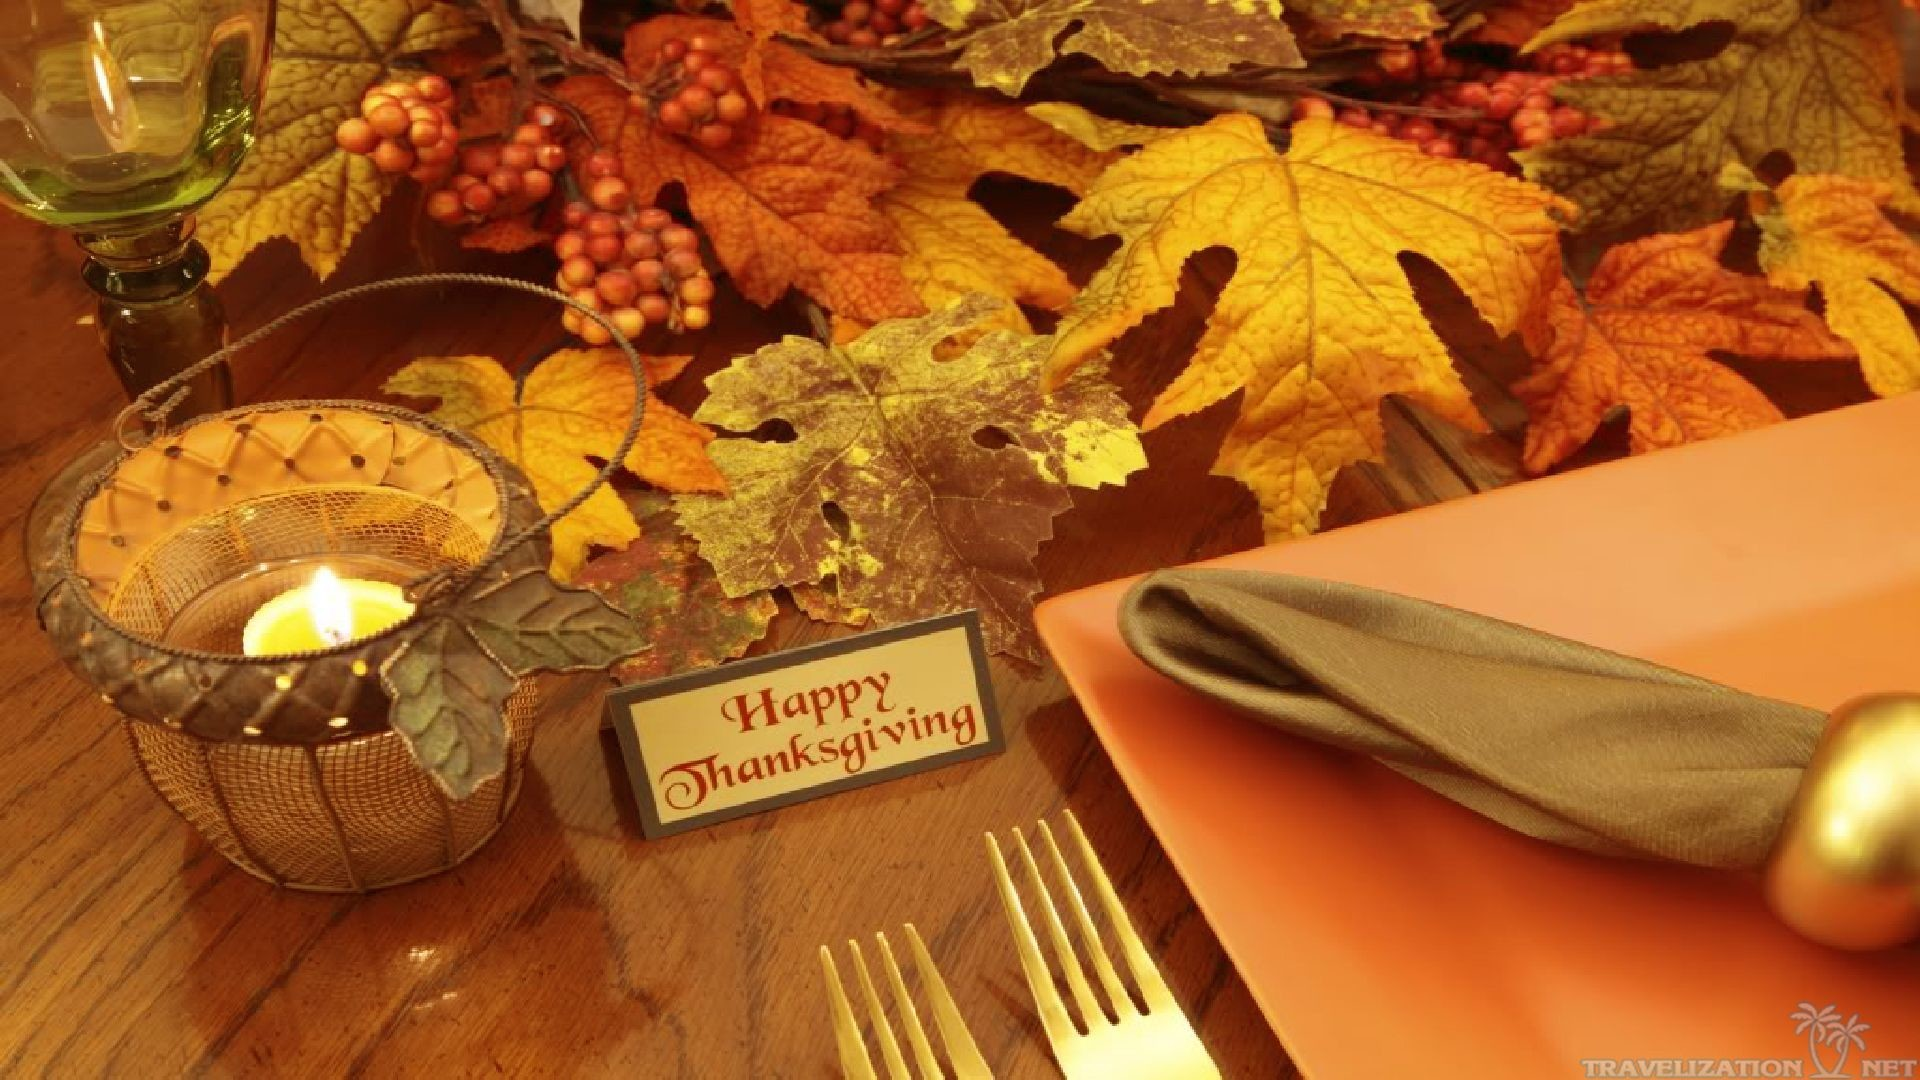 1920x1080 ...  True Joy of Thanksgiving Day Wallpapers Travelizati